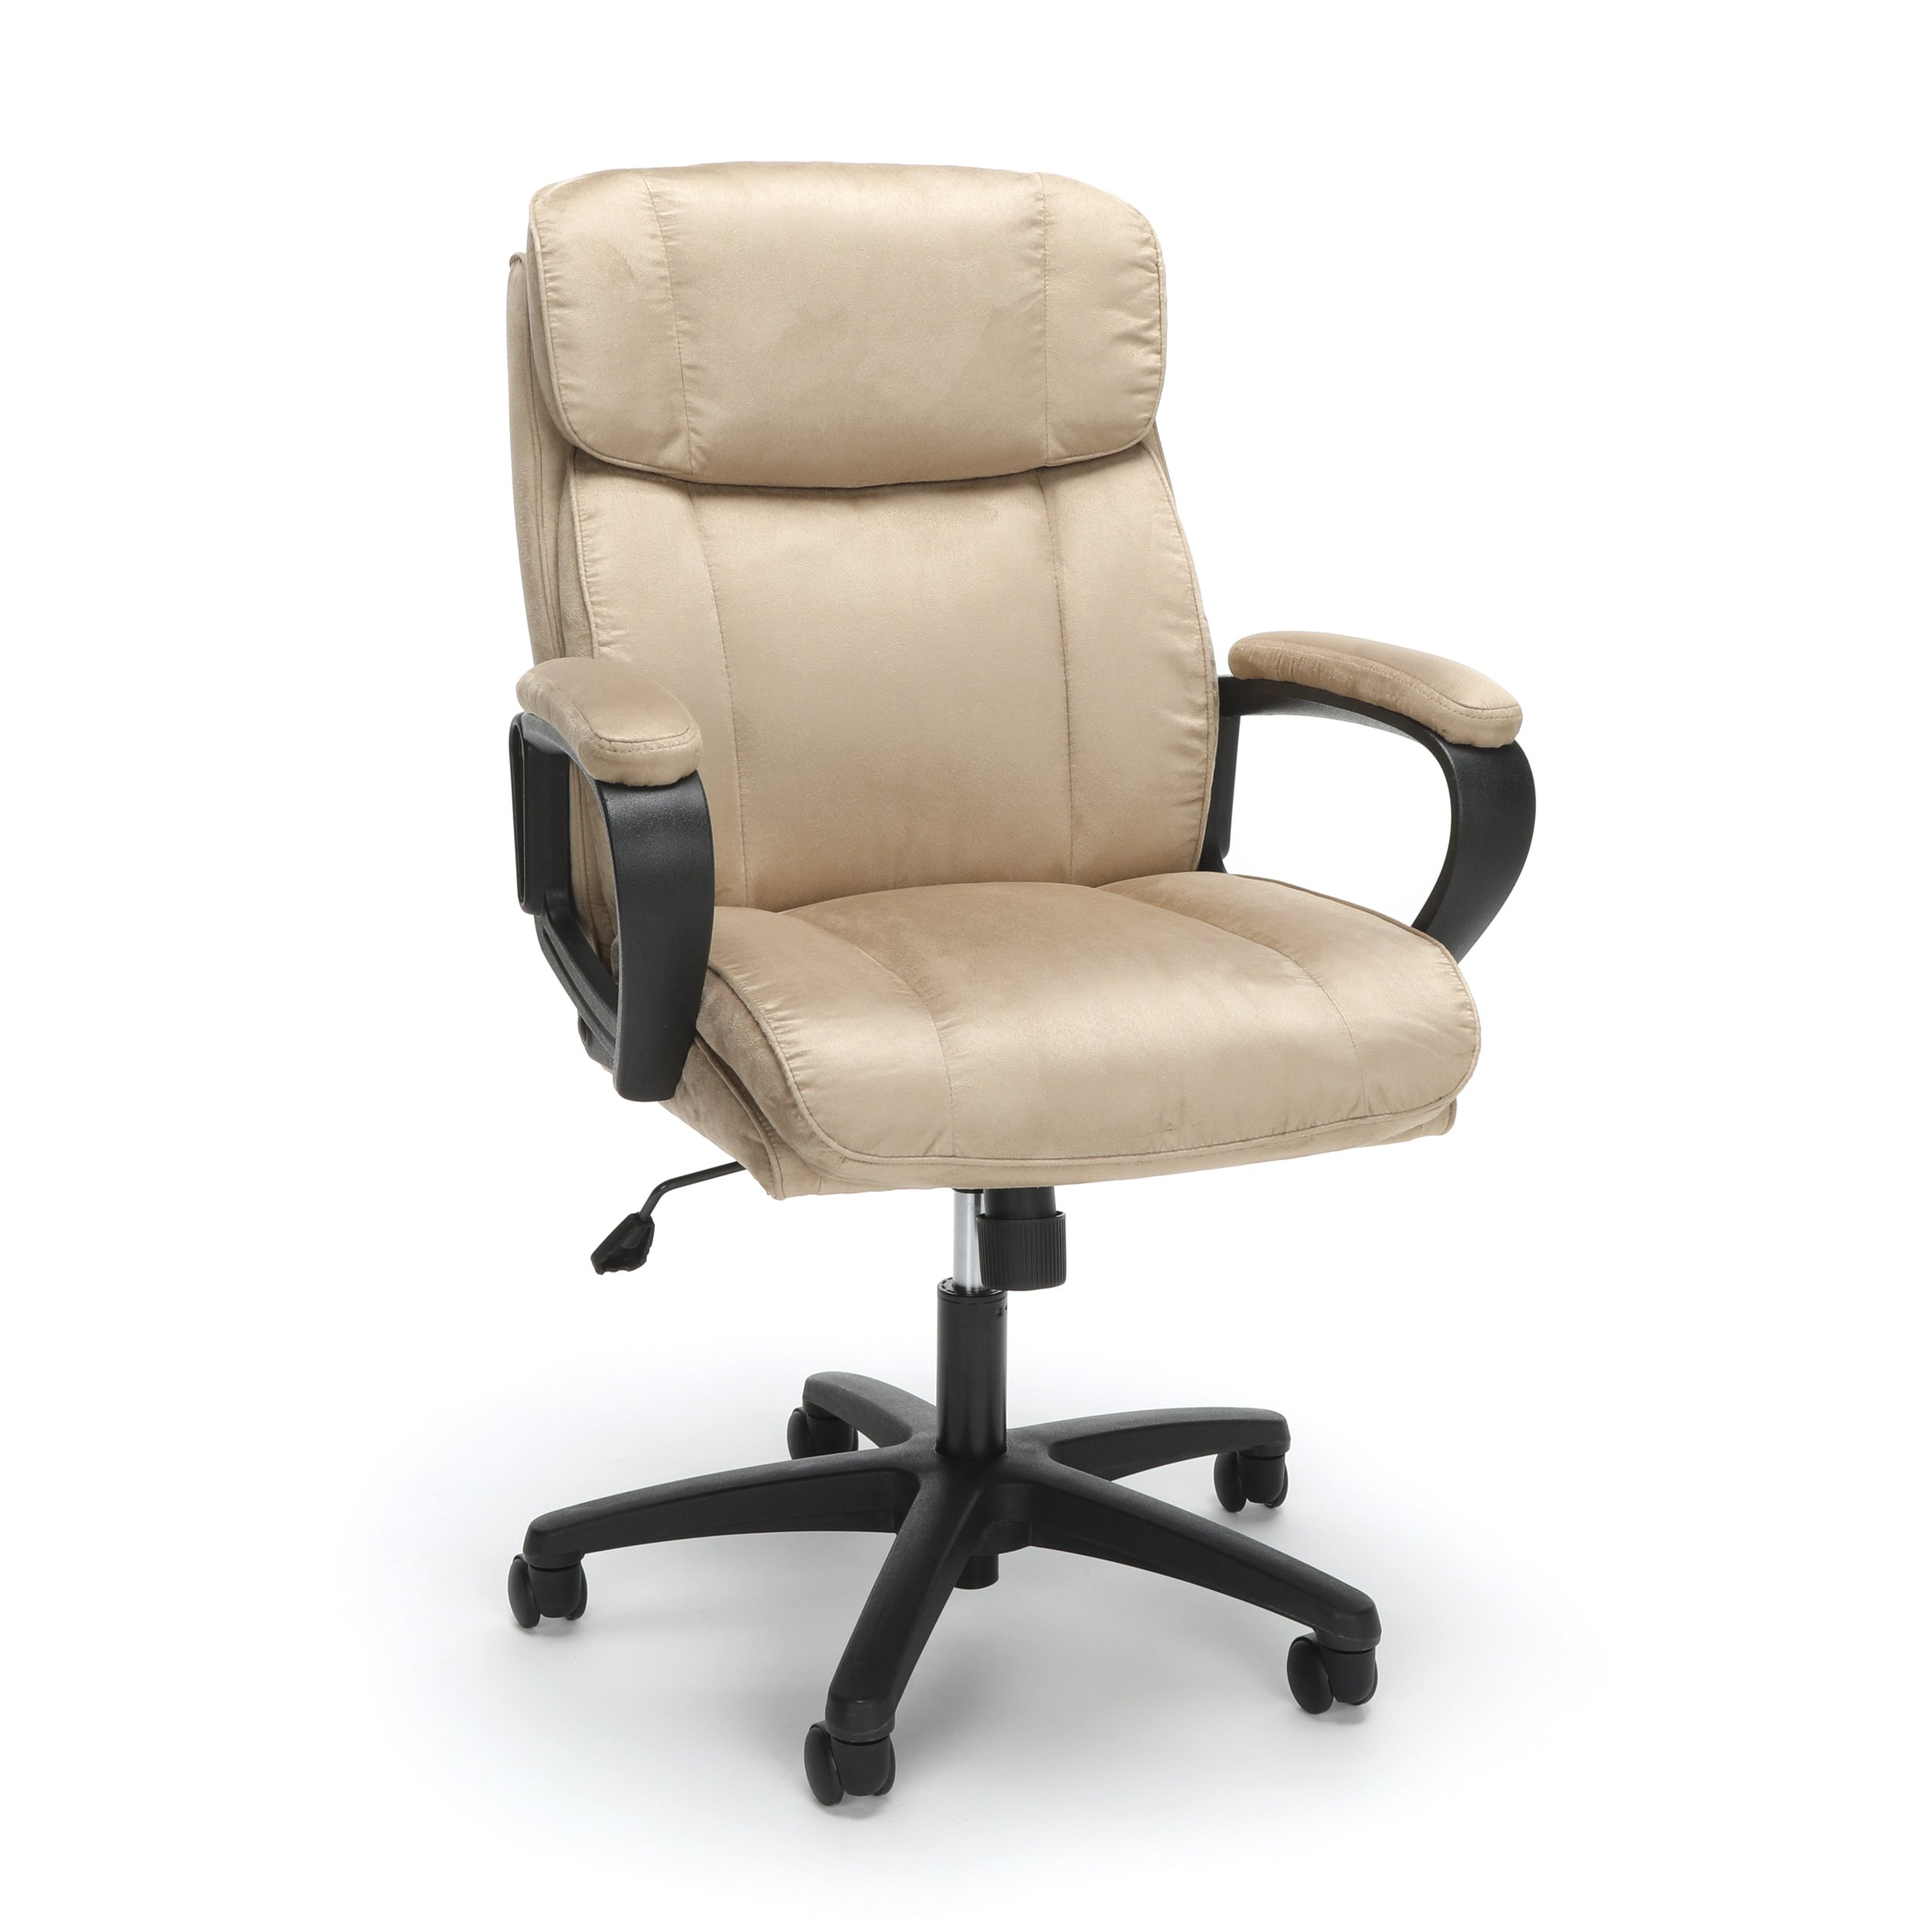 OFM Essentials Collection Plush Microfiber Office Chair, in Tan (ESS-3082-TAN)